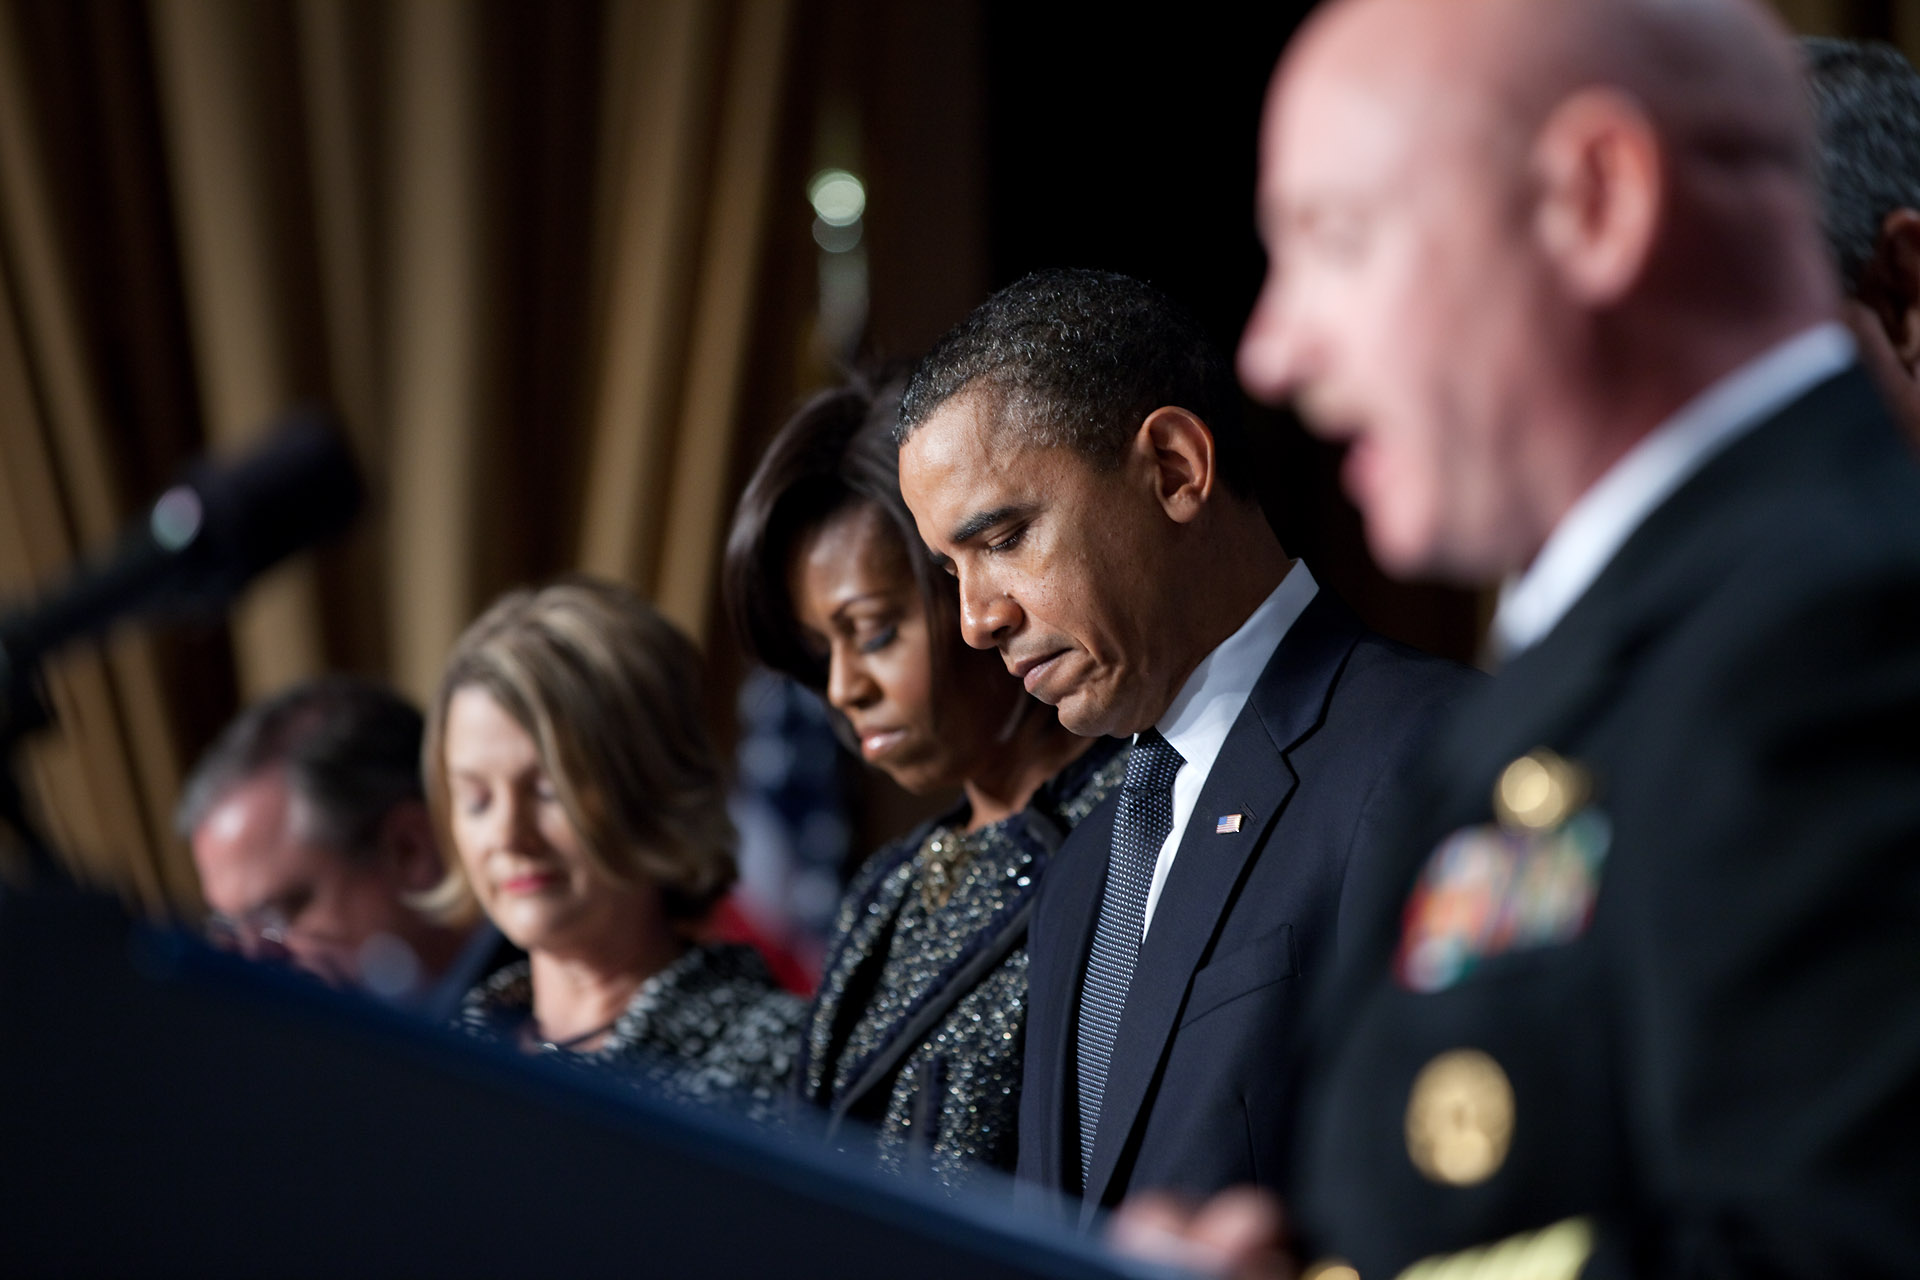 President and First Lady Obama at the National Prayer Breakfast